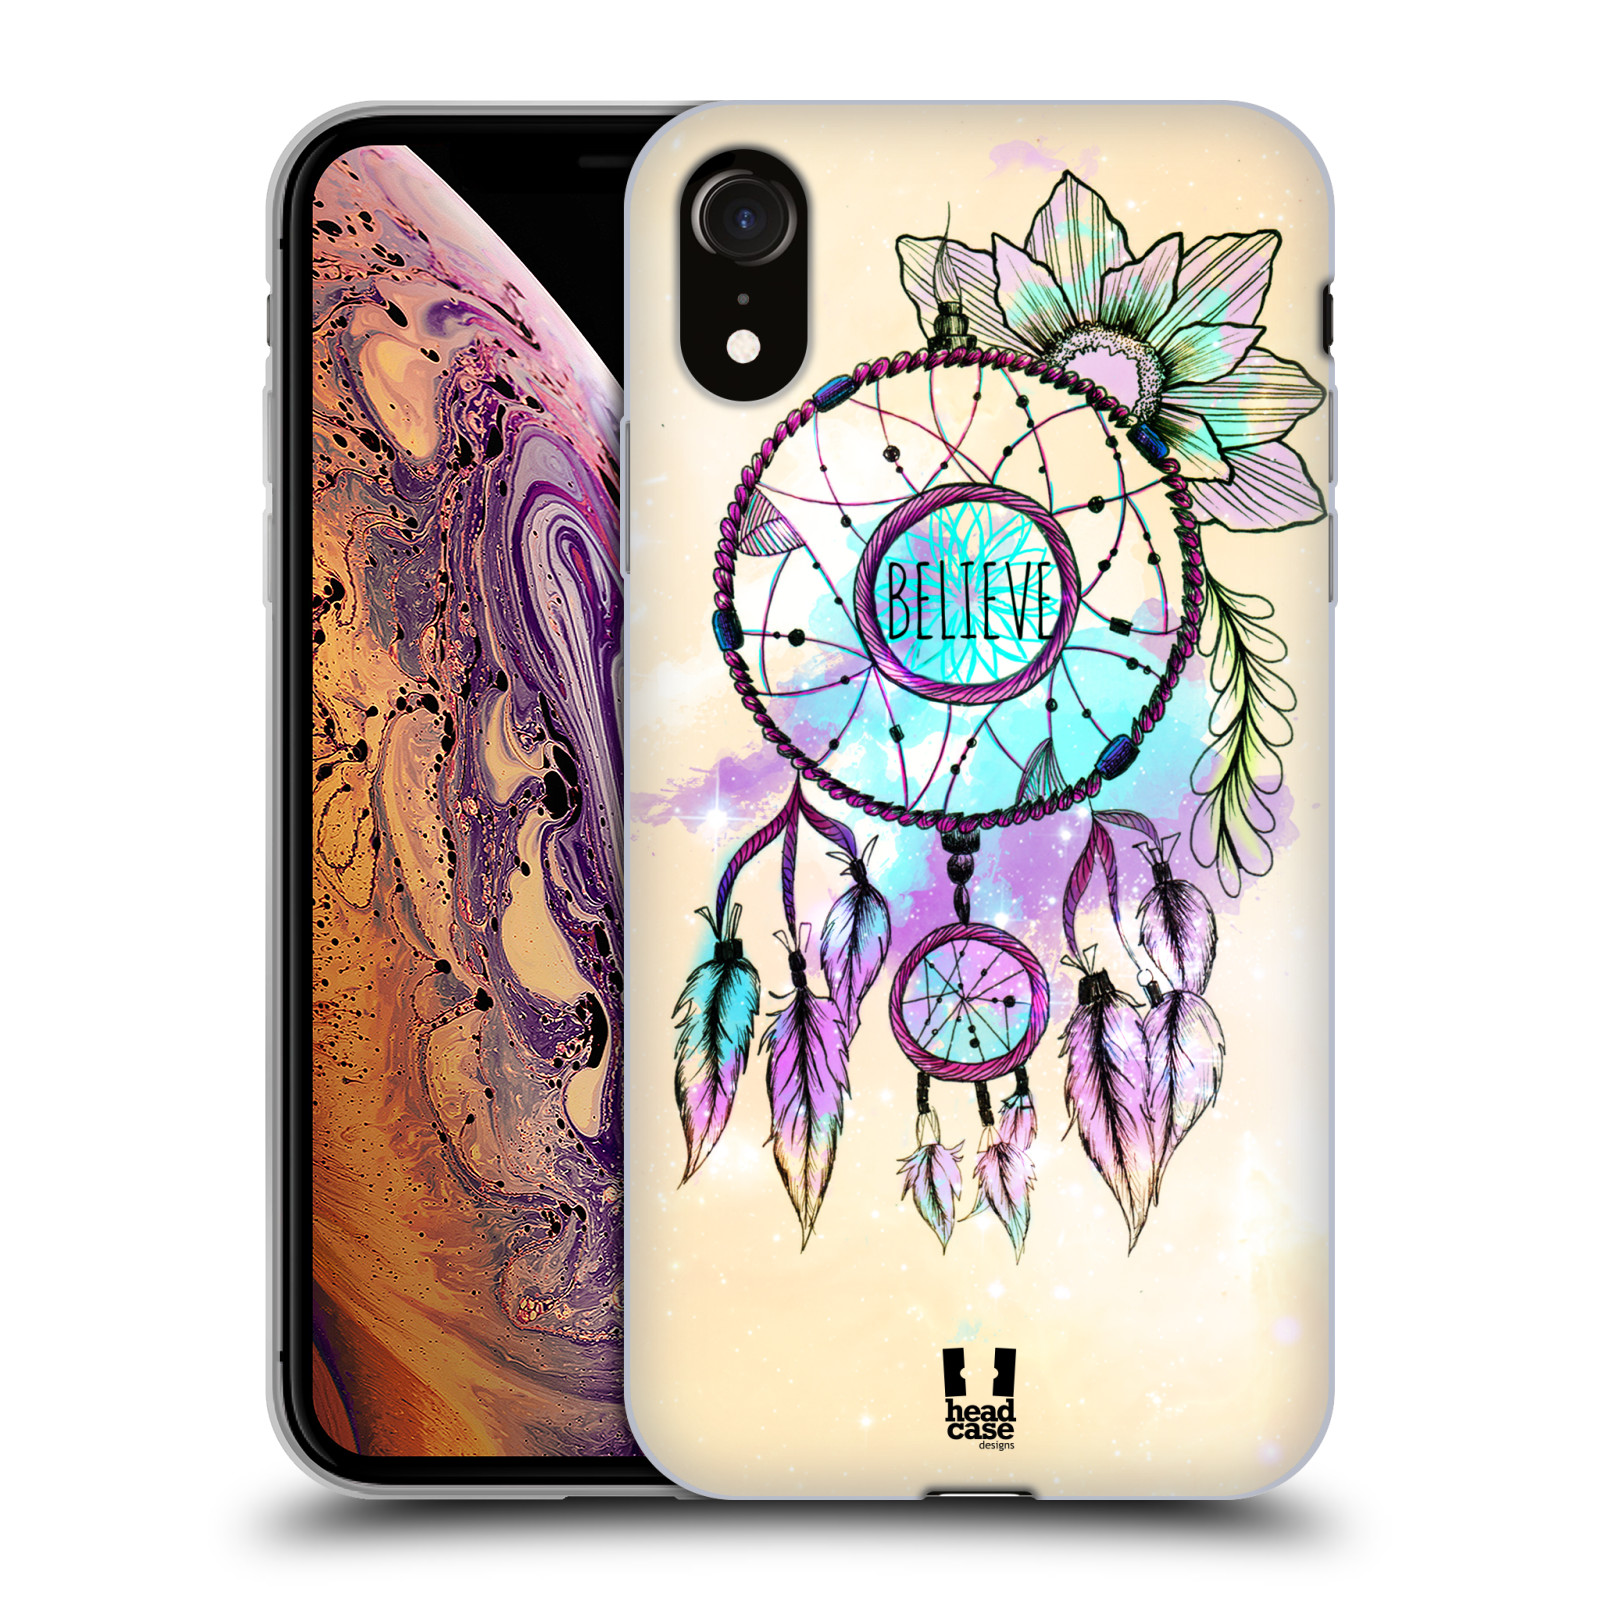 Silikonové pouzdro na mobil Apple iPhone XR - Head Case - MIX BELIEVE